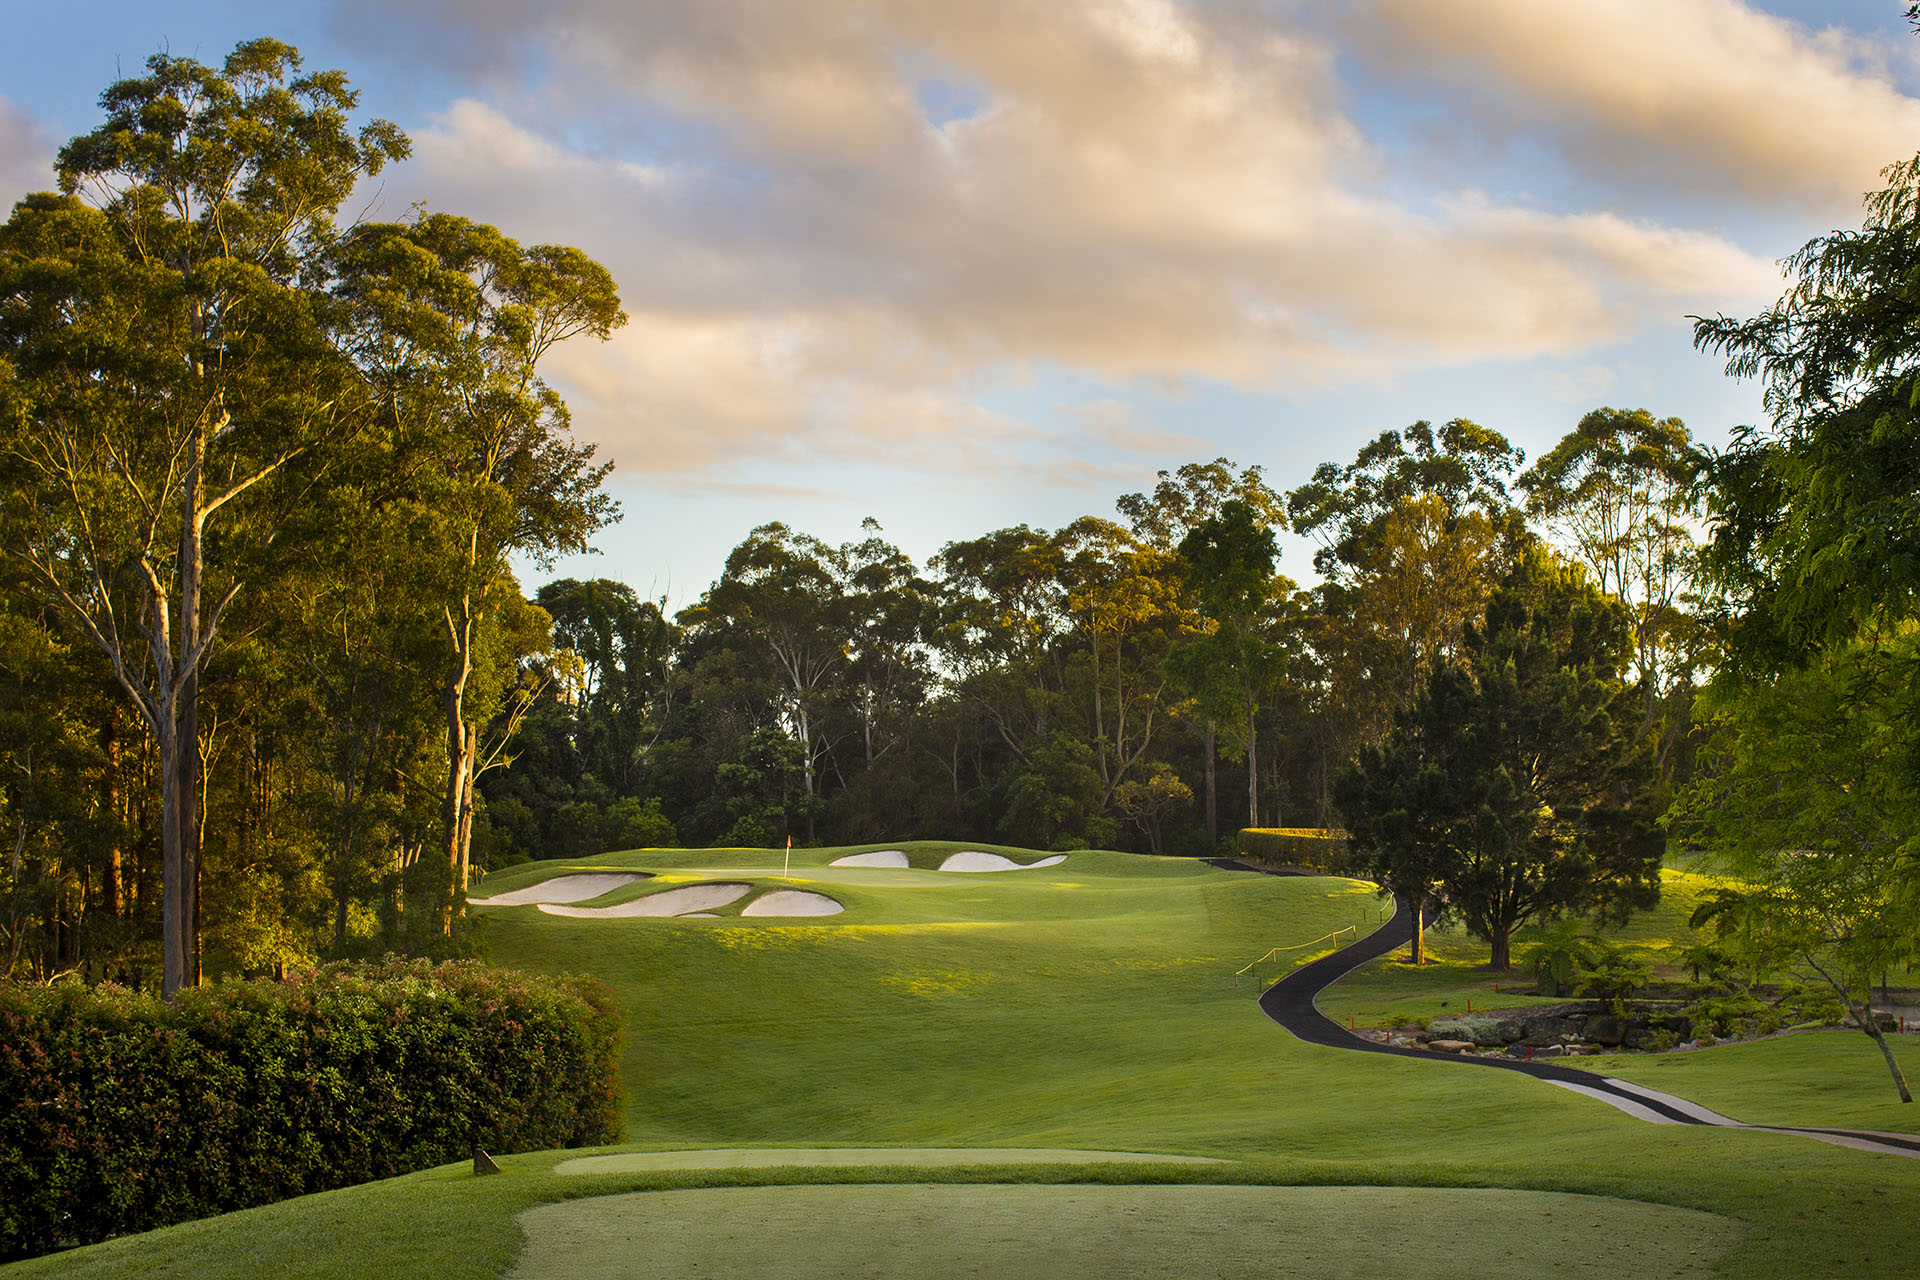 0002_Pymble_Golf_Par_3s_Nov_2015